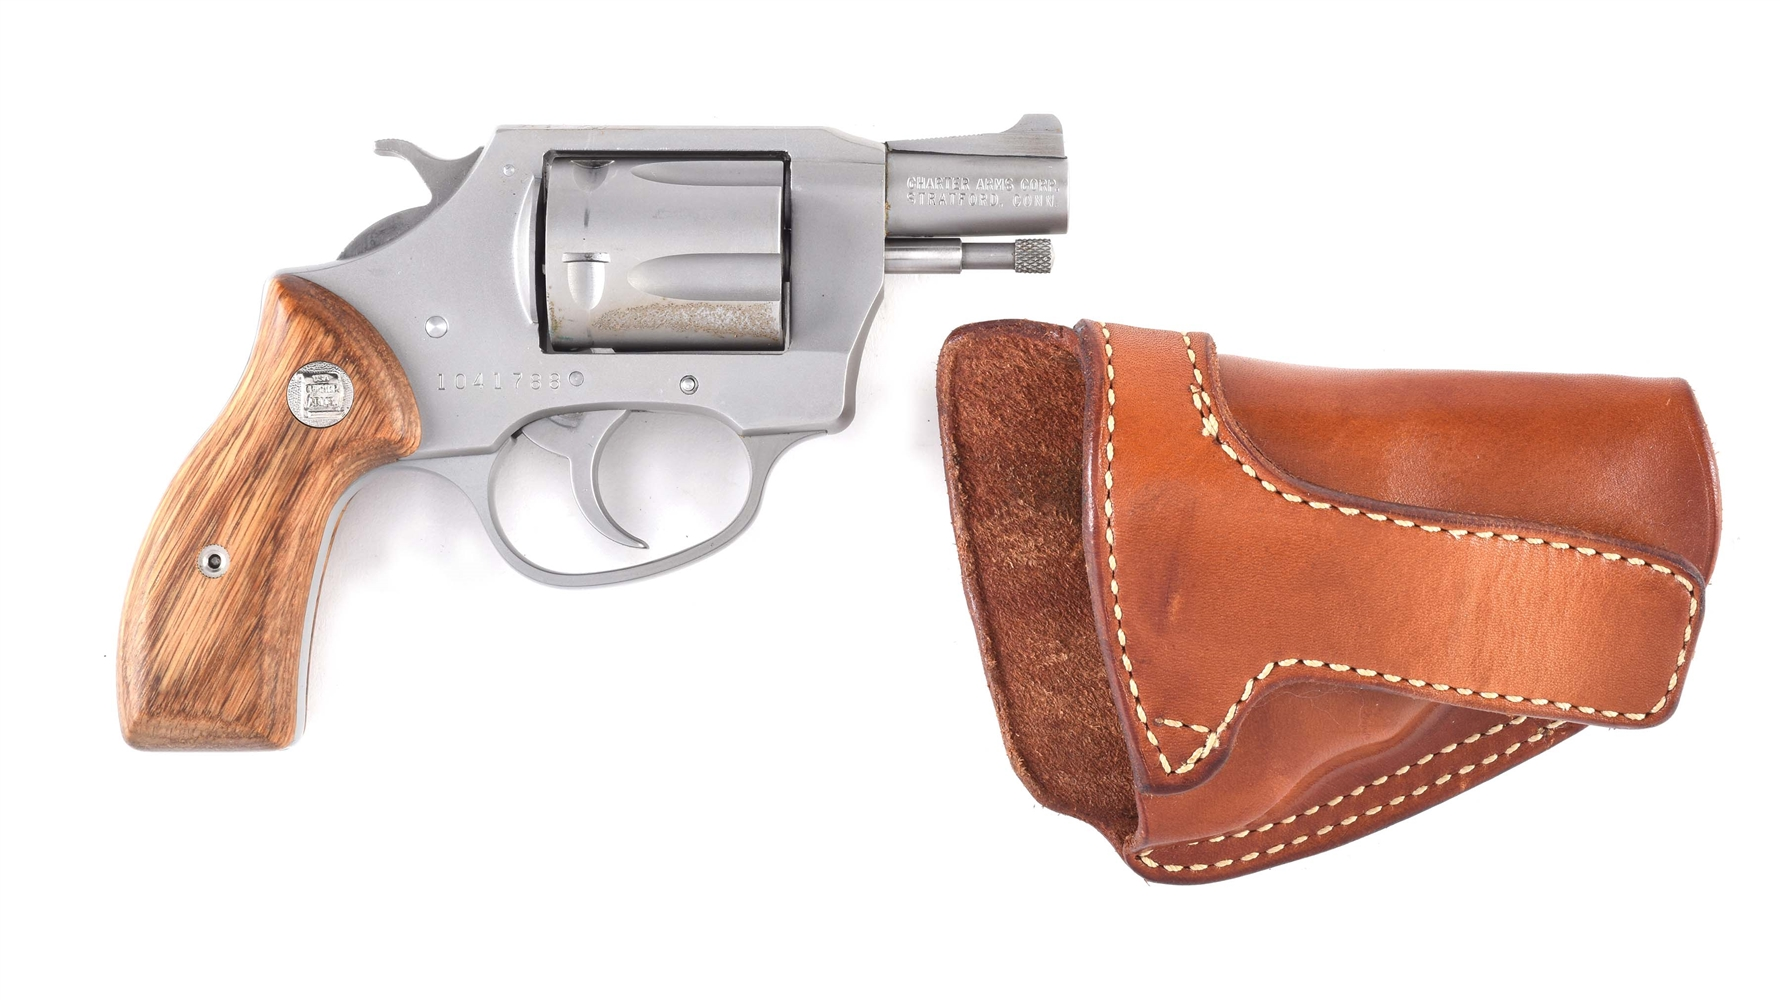 (M) Charter Arms Off Duty Snub Nose Double Action Revolver.